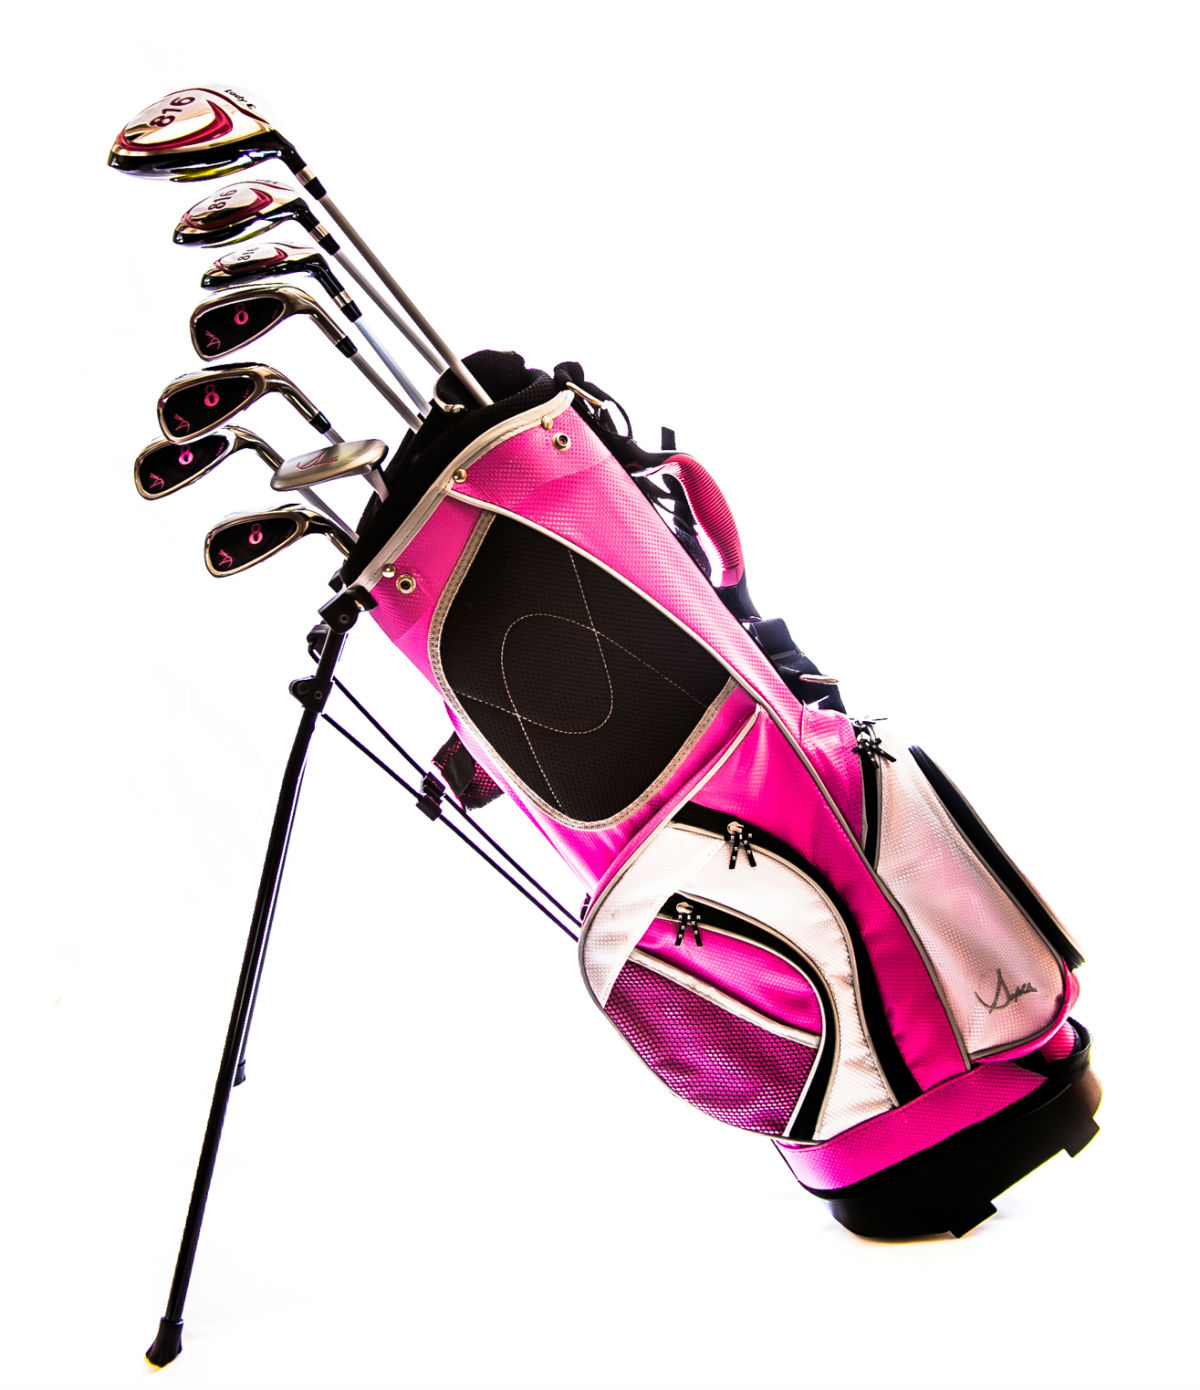 Sephlin - Lady Talia *8*  Pcs Golf Club Set and Golf Bag Ages 11 - 14 RH